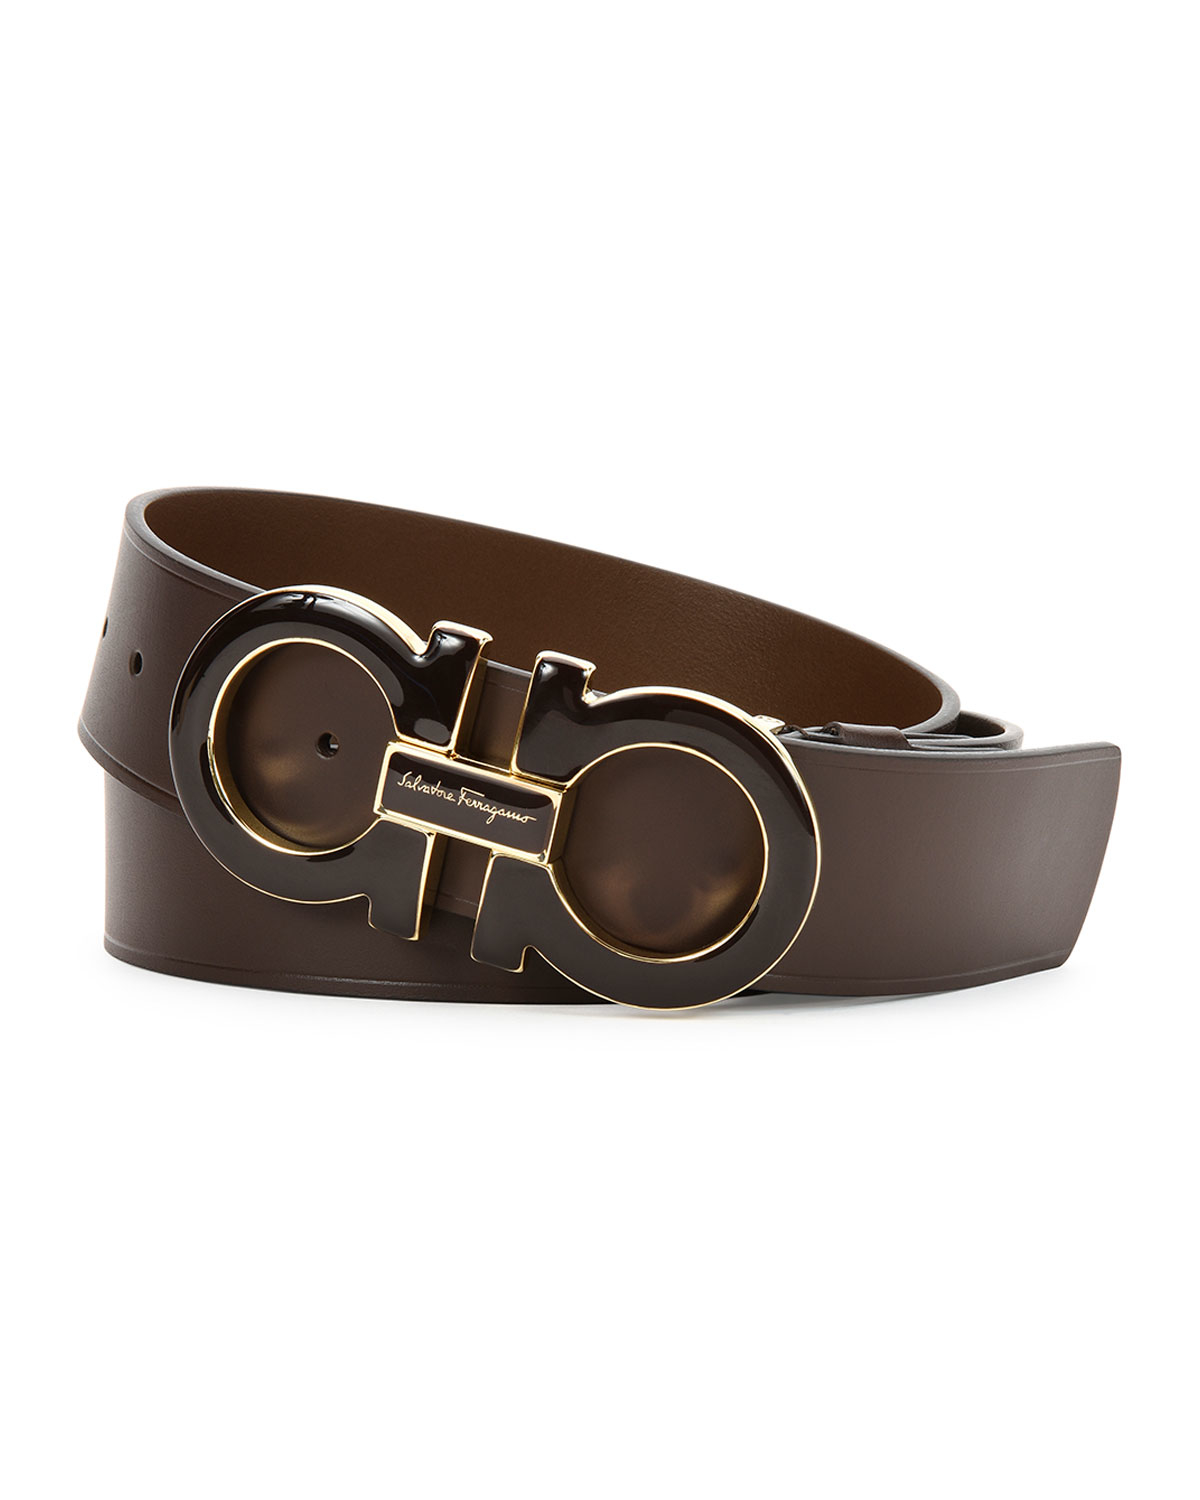 ferragamo large gancini buckle belt in brown lyst